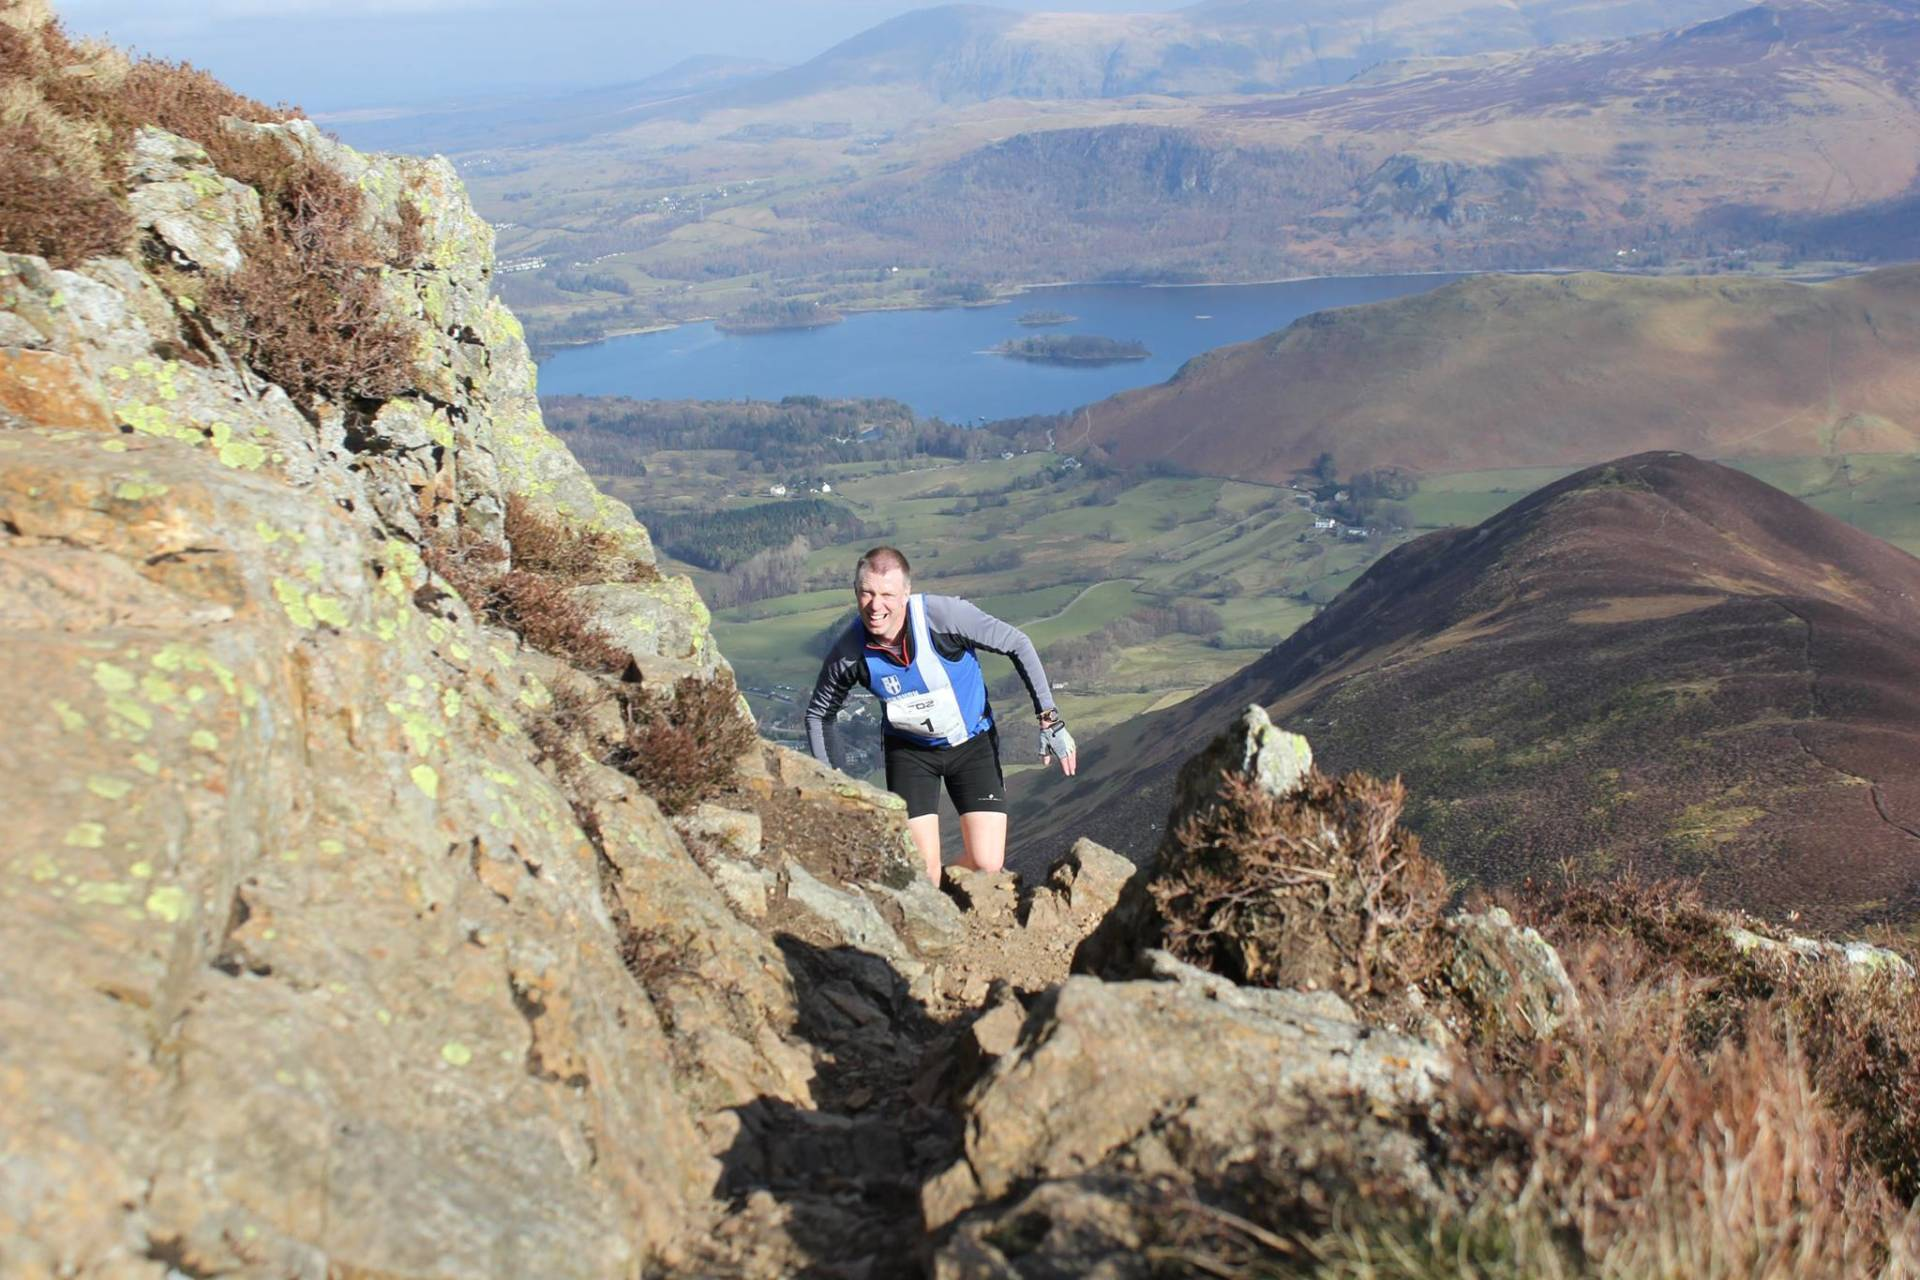 The Harriers at Garstang Gallop – Trimple 20 – Heptonstall/Blackcombe/Causey Pike Fell Races – Park 5k Runs